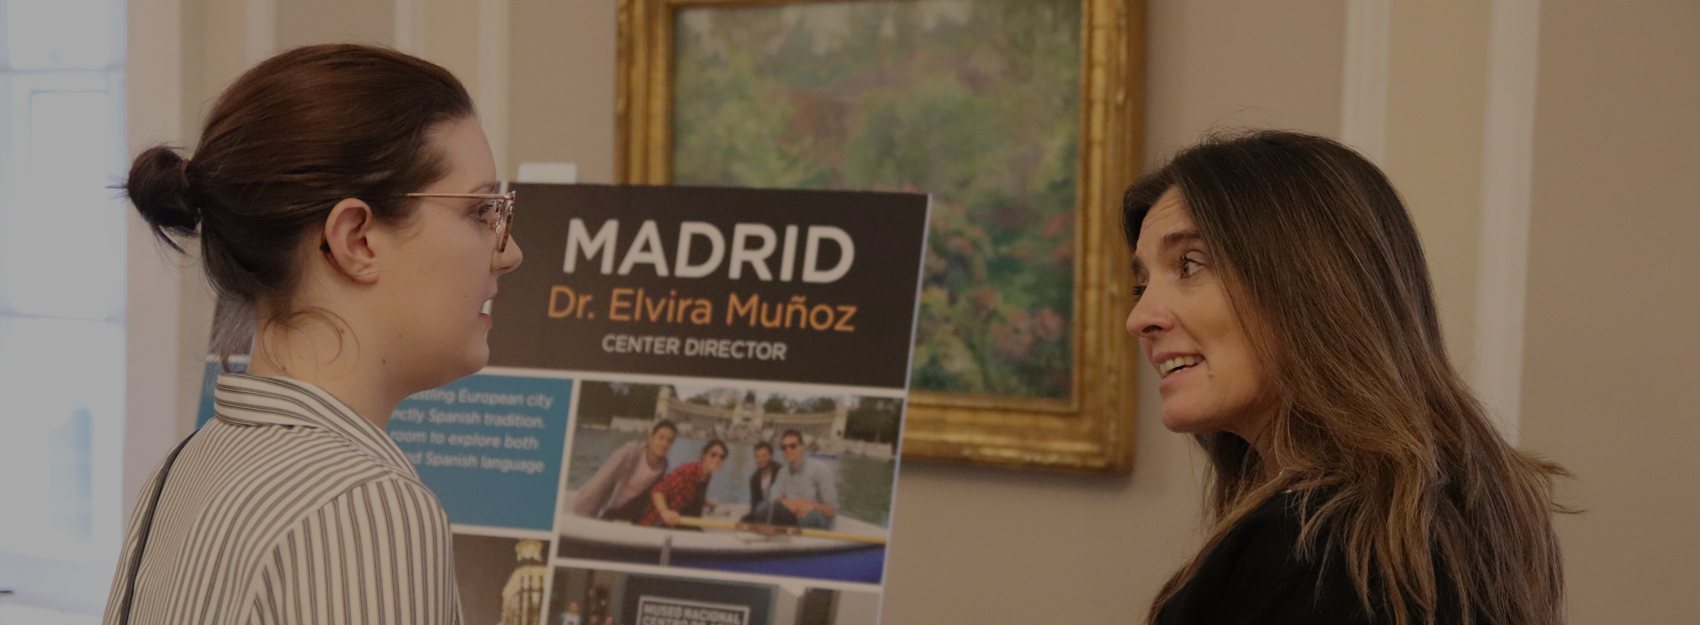 two women talking in front of a poster board about Madrid